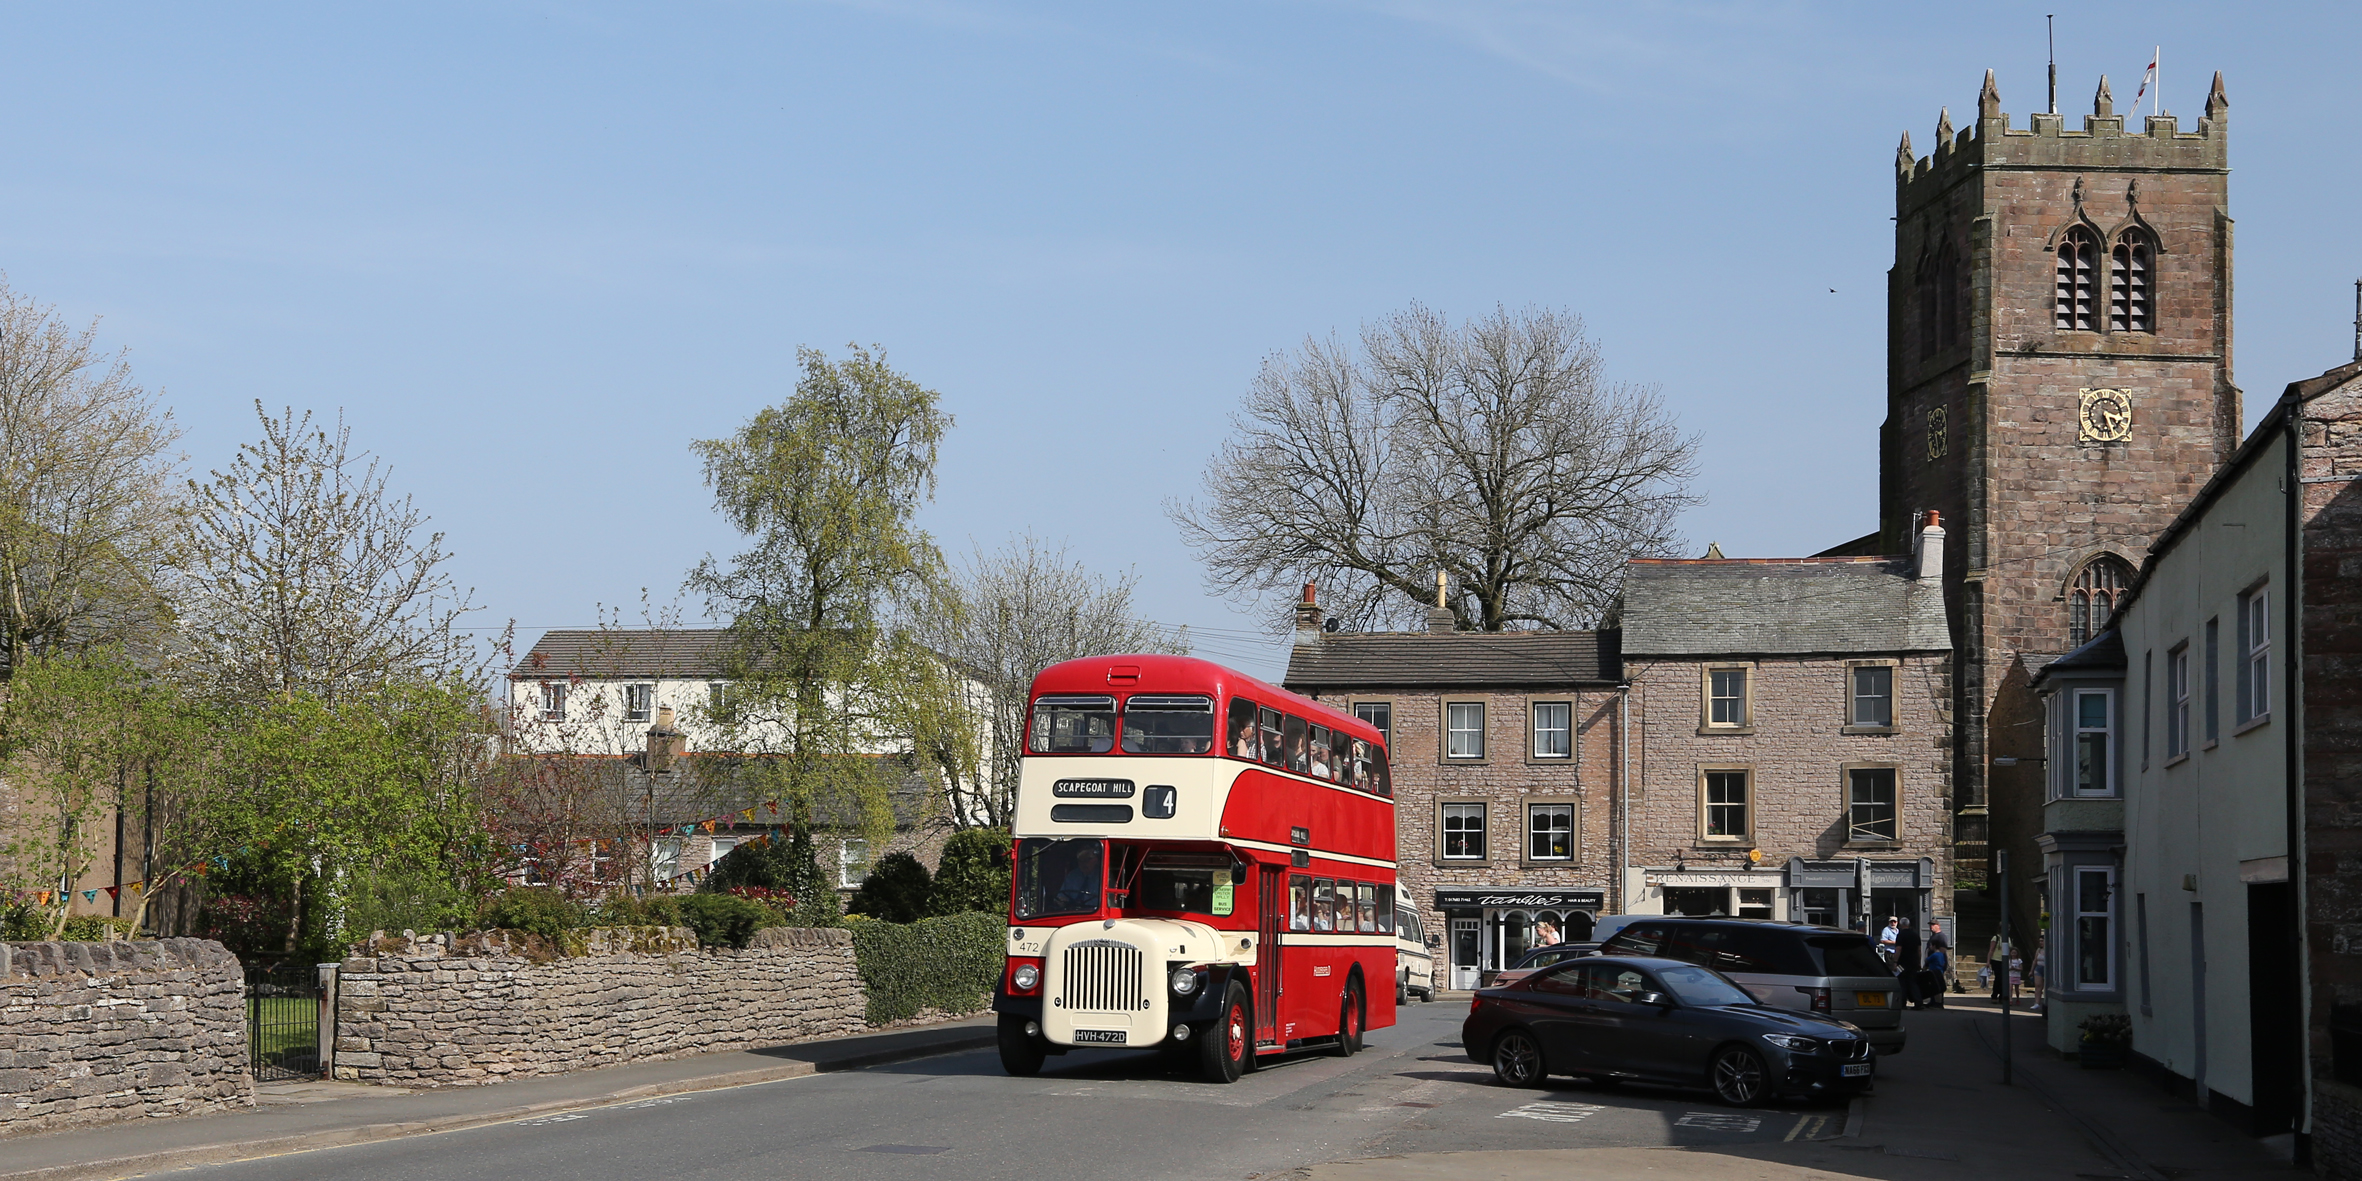 Easter bus gift for Cumbria